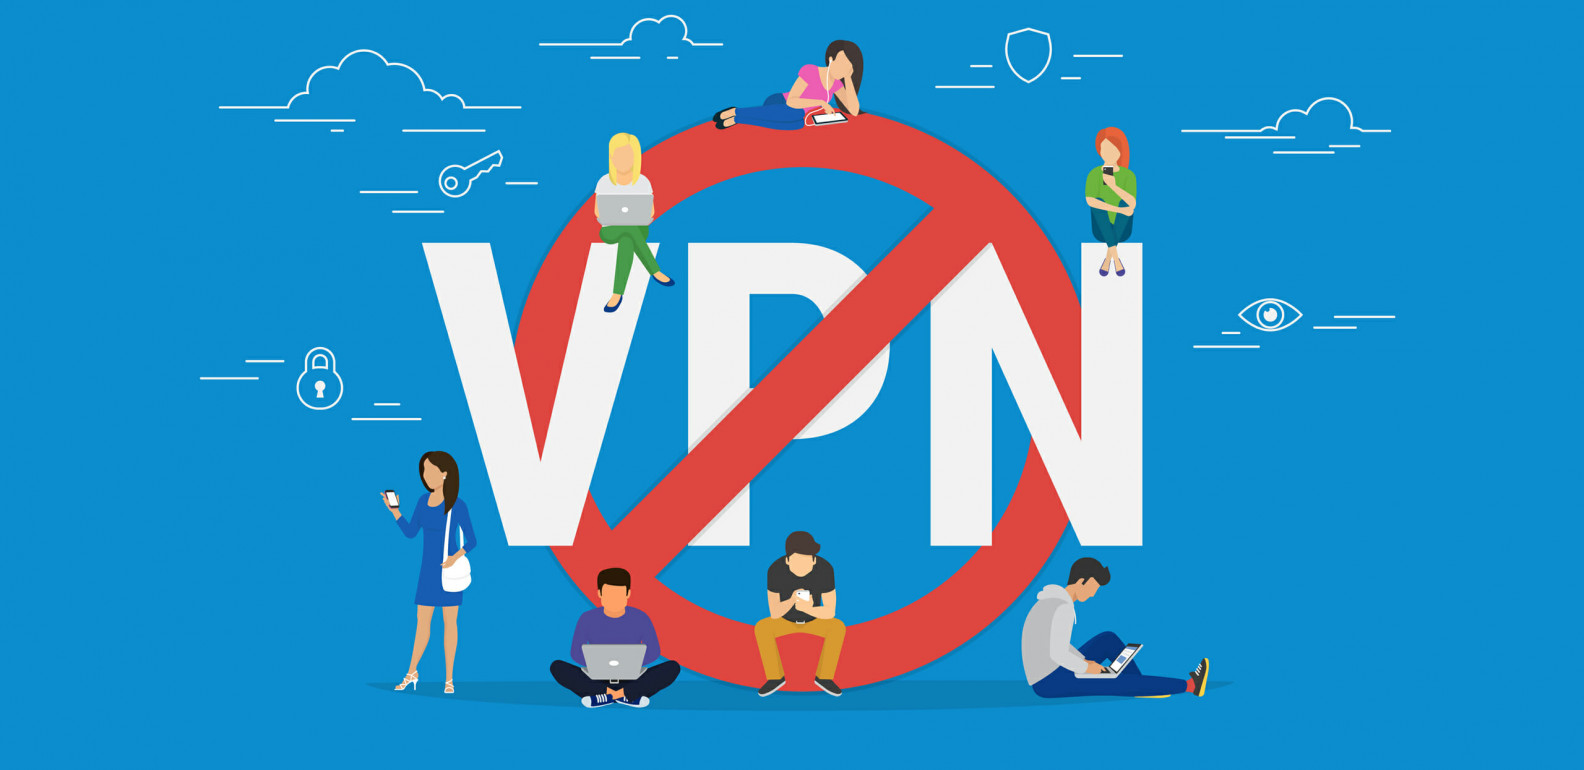 Russia threatens to ban VPNs